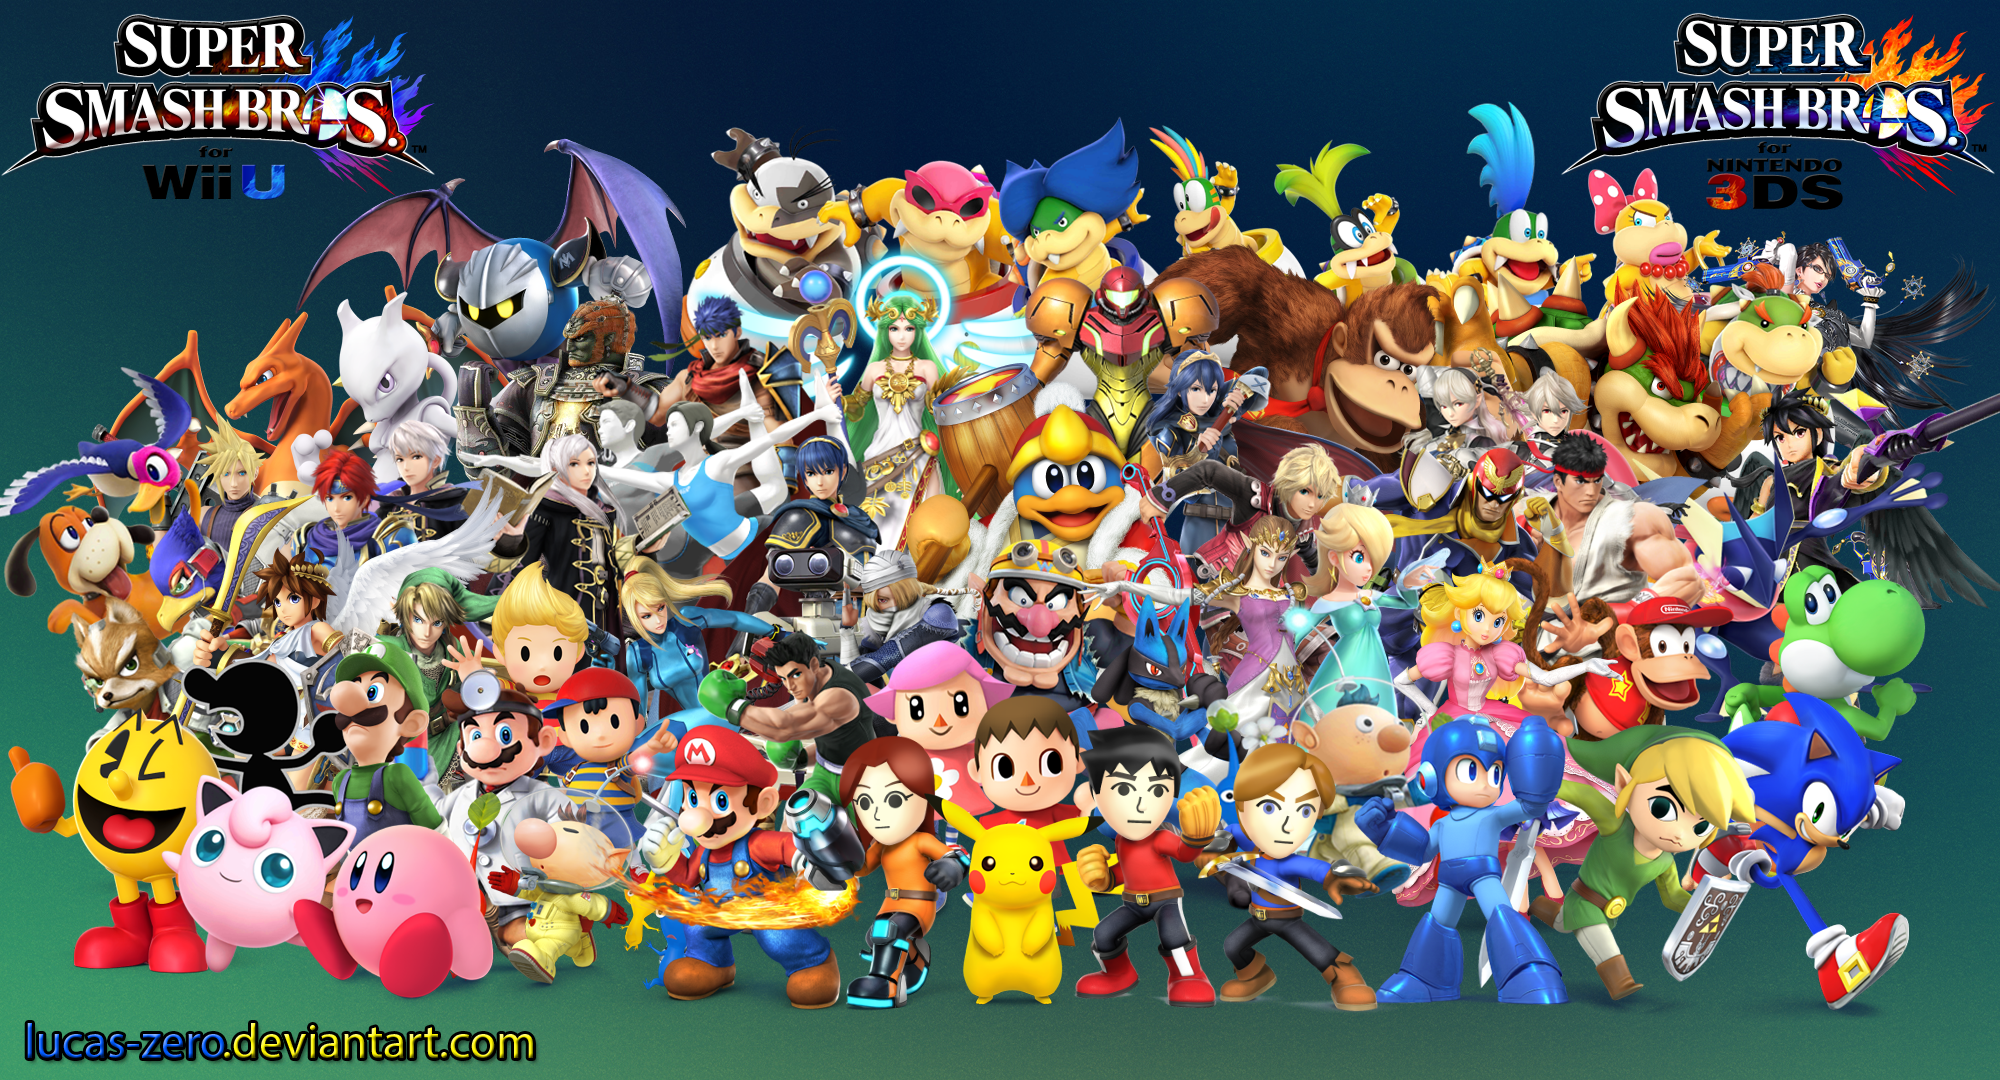 Mewkwota Super Smash Bros 4: Super Smash Bros 4 Wallpaper By Lucas-Zero On DeviantArt